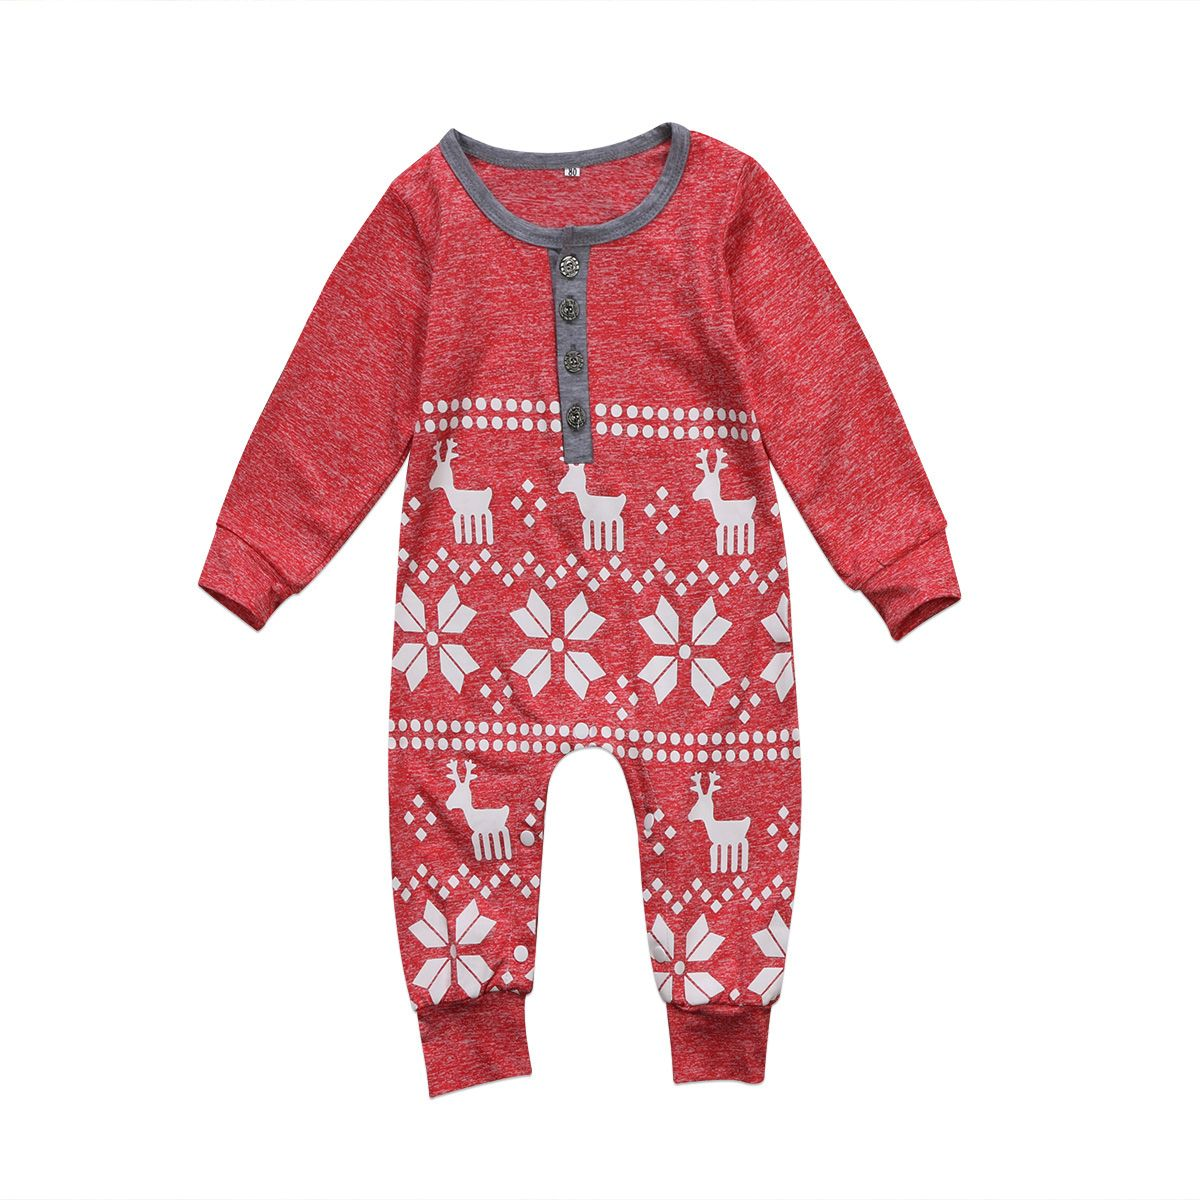 81a238ca7 XMAS Snowflake Newborn Baby Girl Top Outfit Clothes Romper Jumpsuit ...